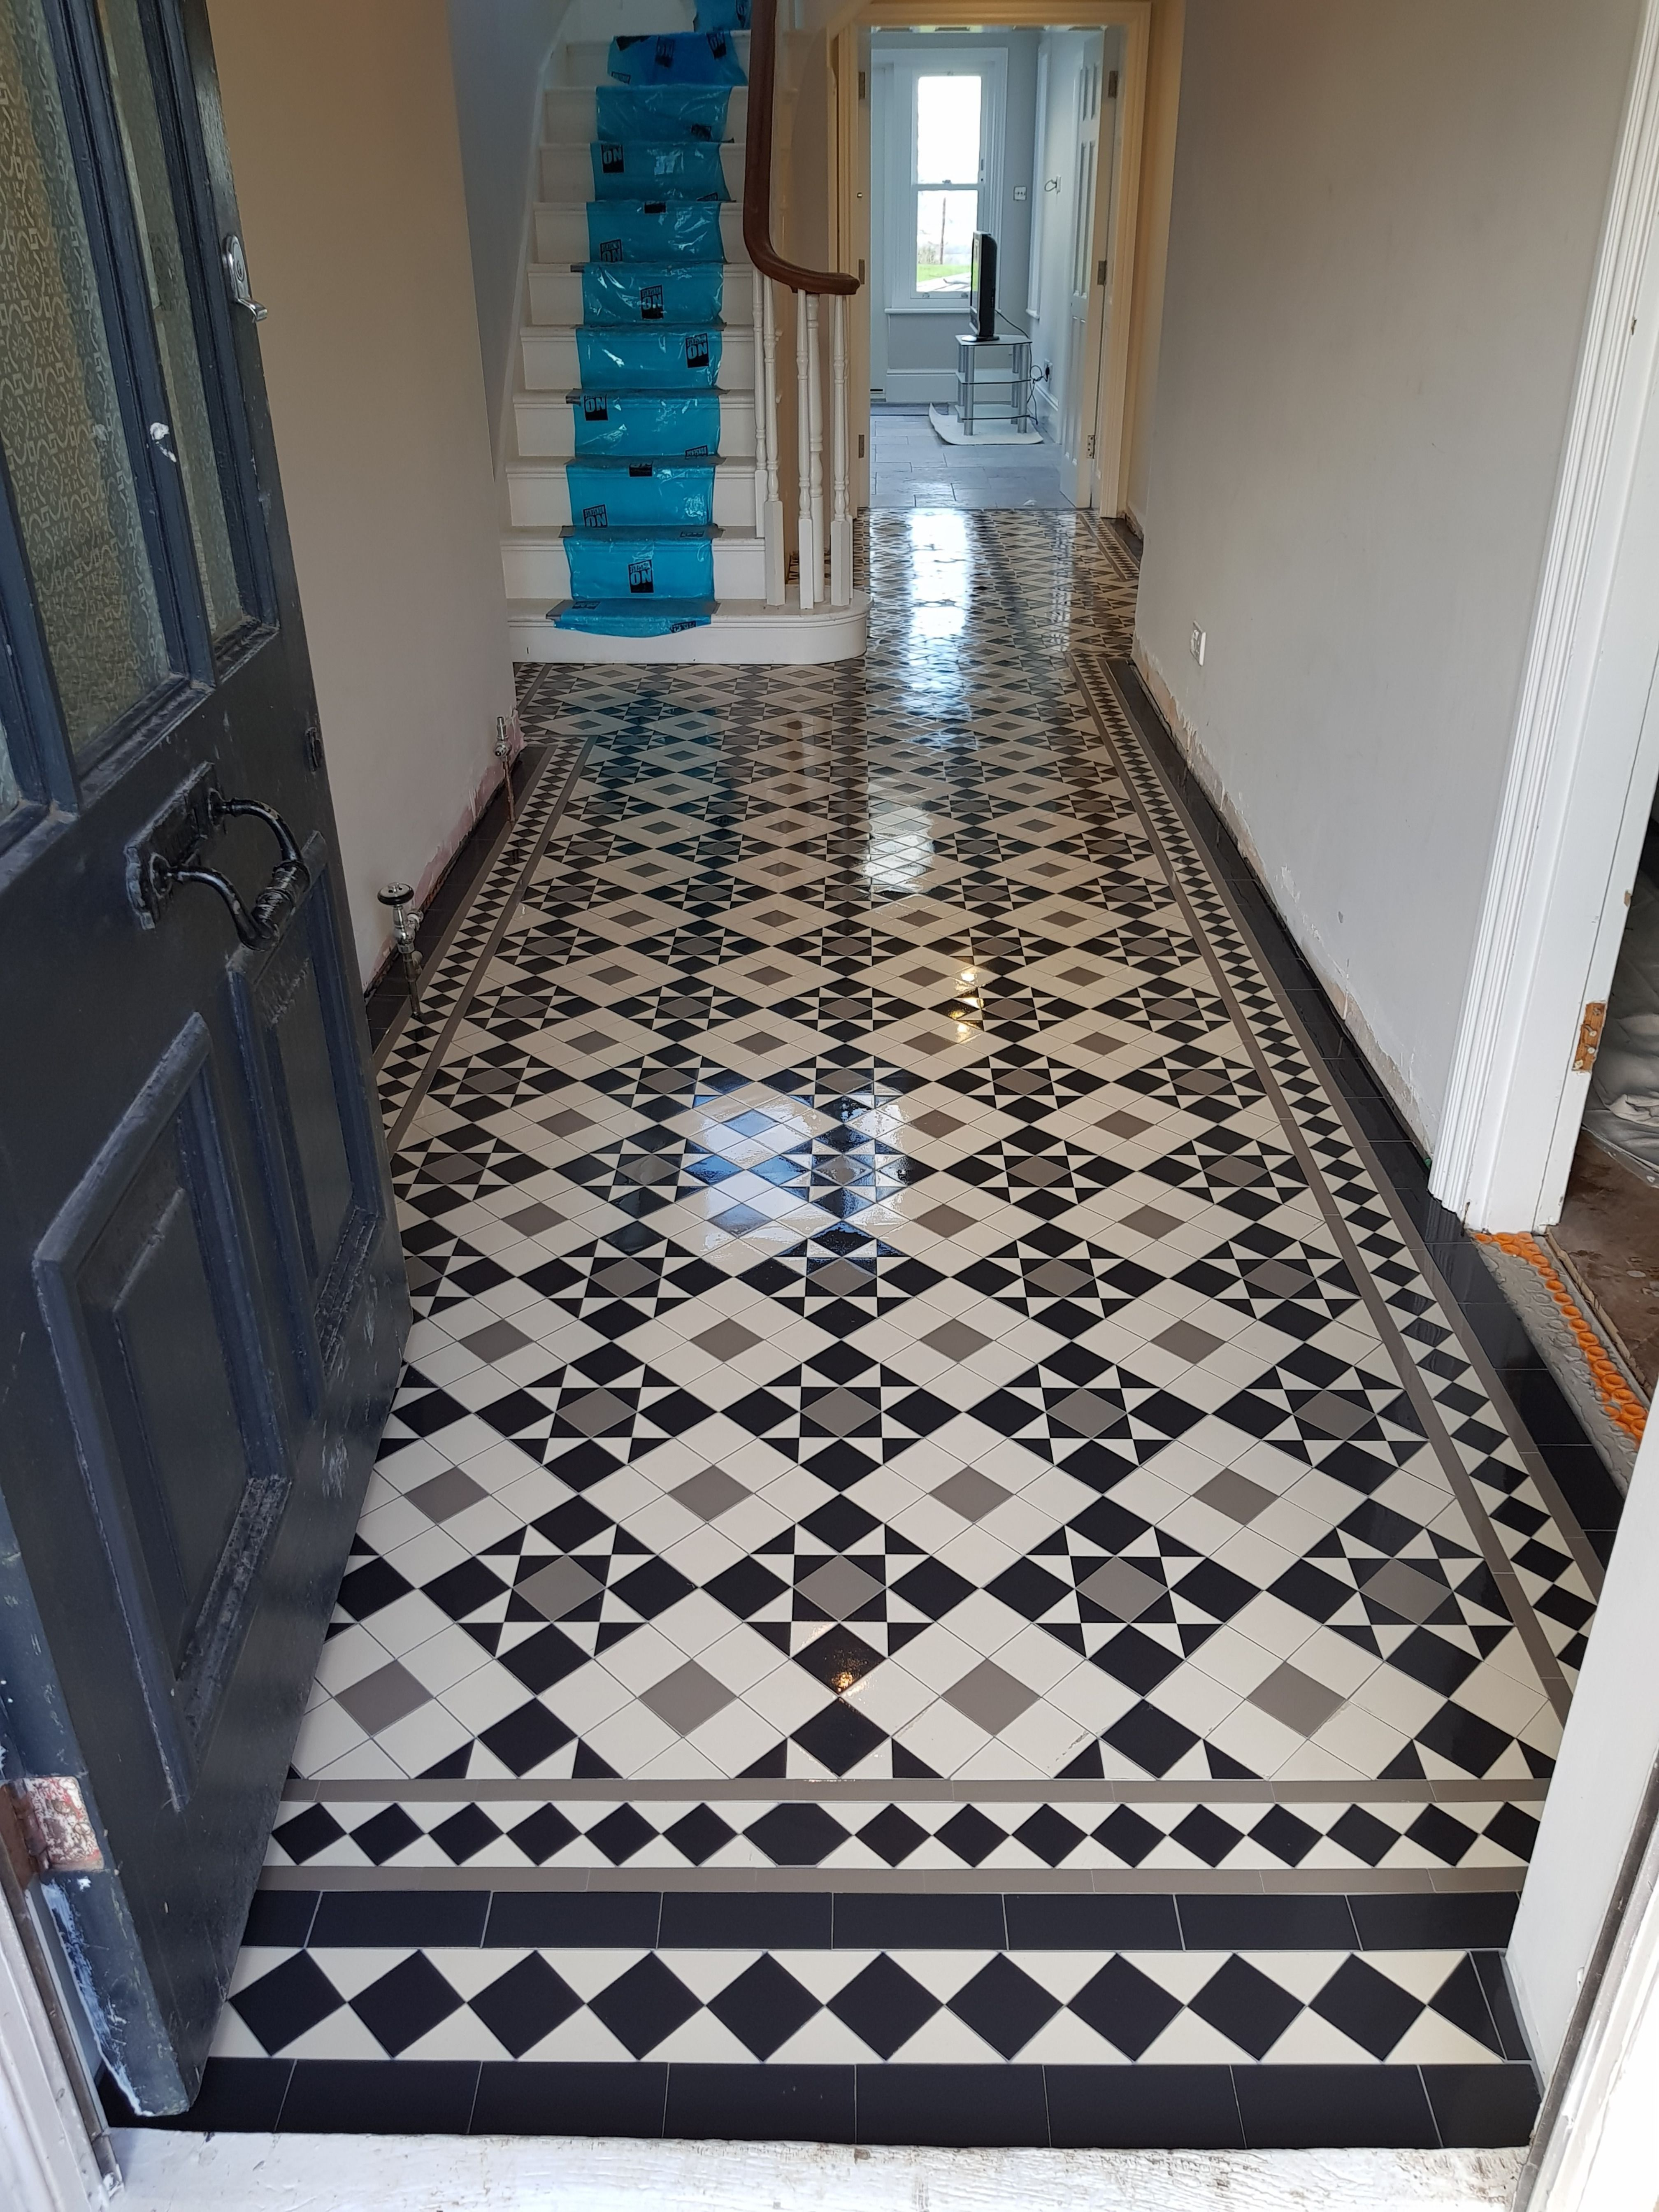 London Mosaic Hallway Tiles Black And White Victorian Www Londonmosaic Com Contact Us At Inf Tiled Hallway Victorian Tiles Bathroom Black Floor Tiles